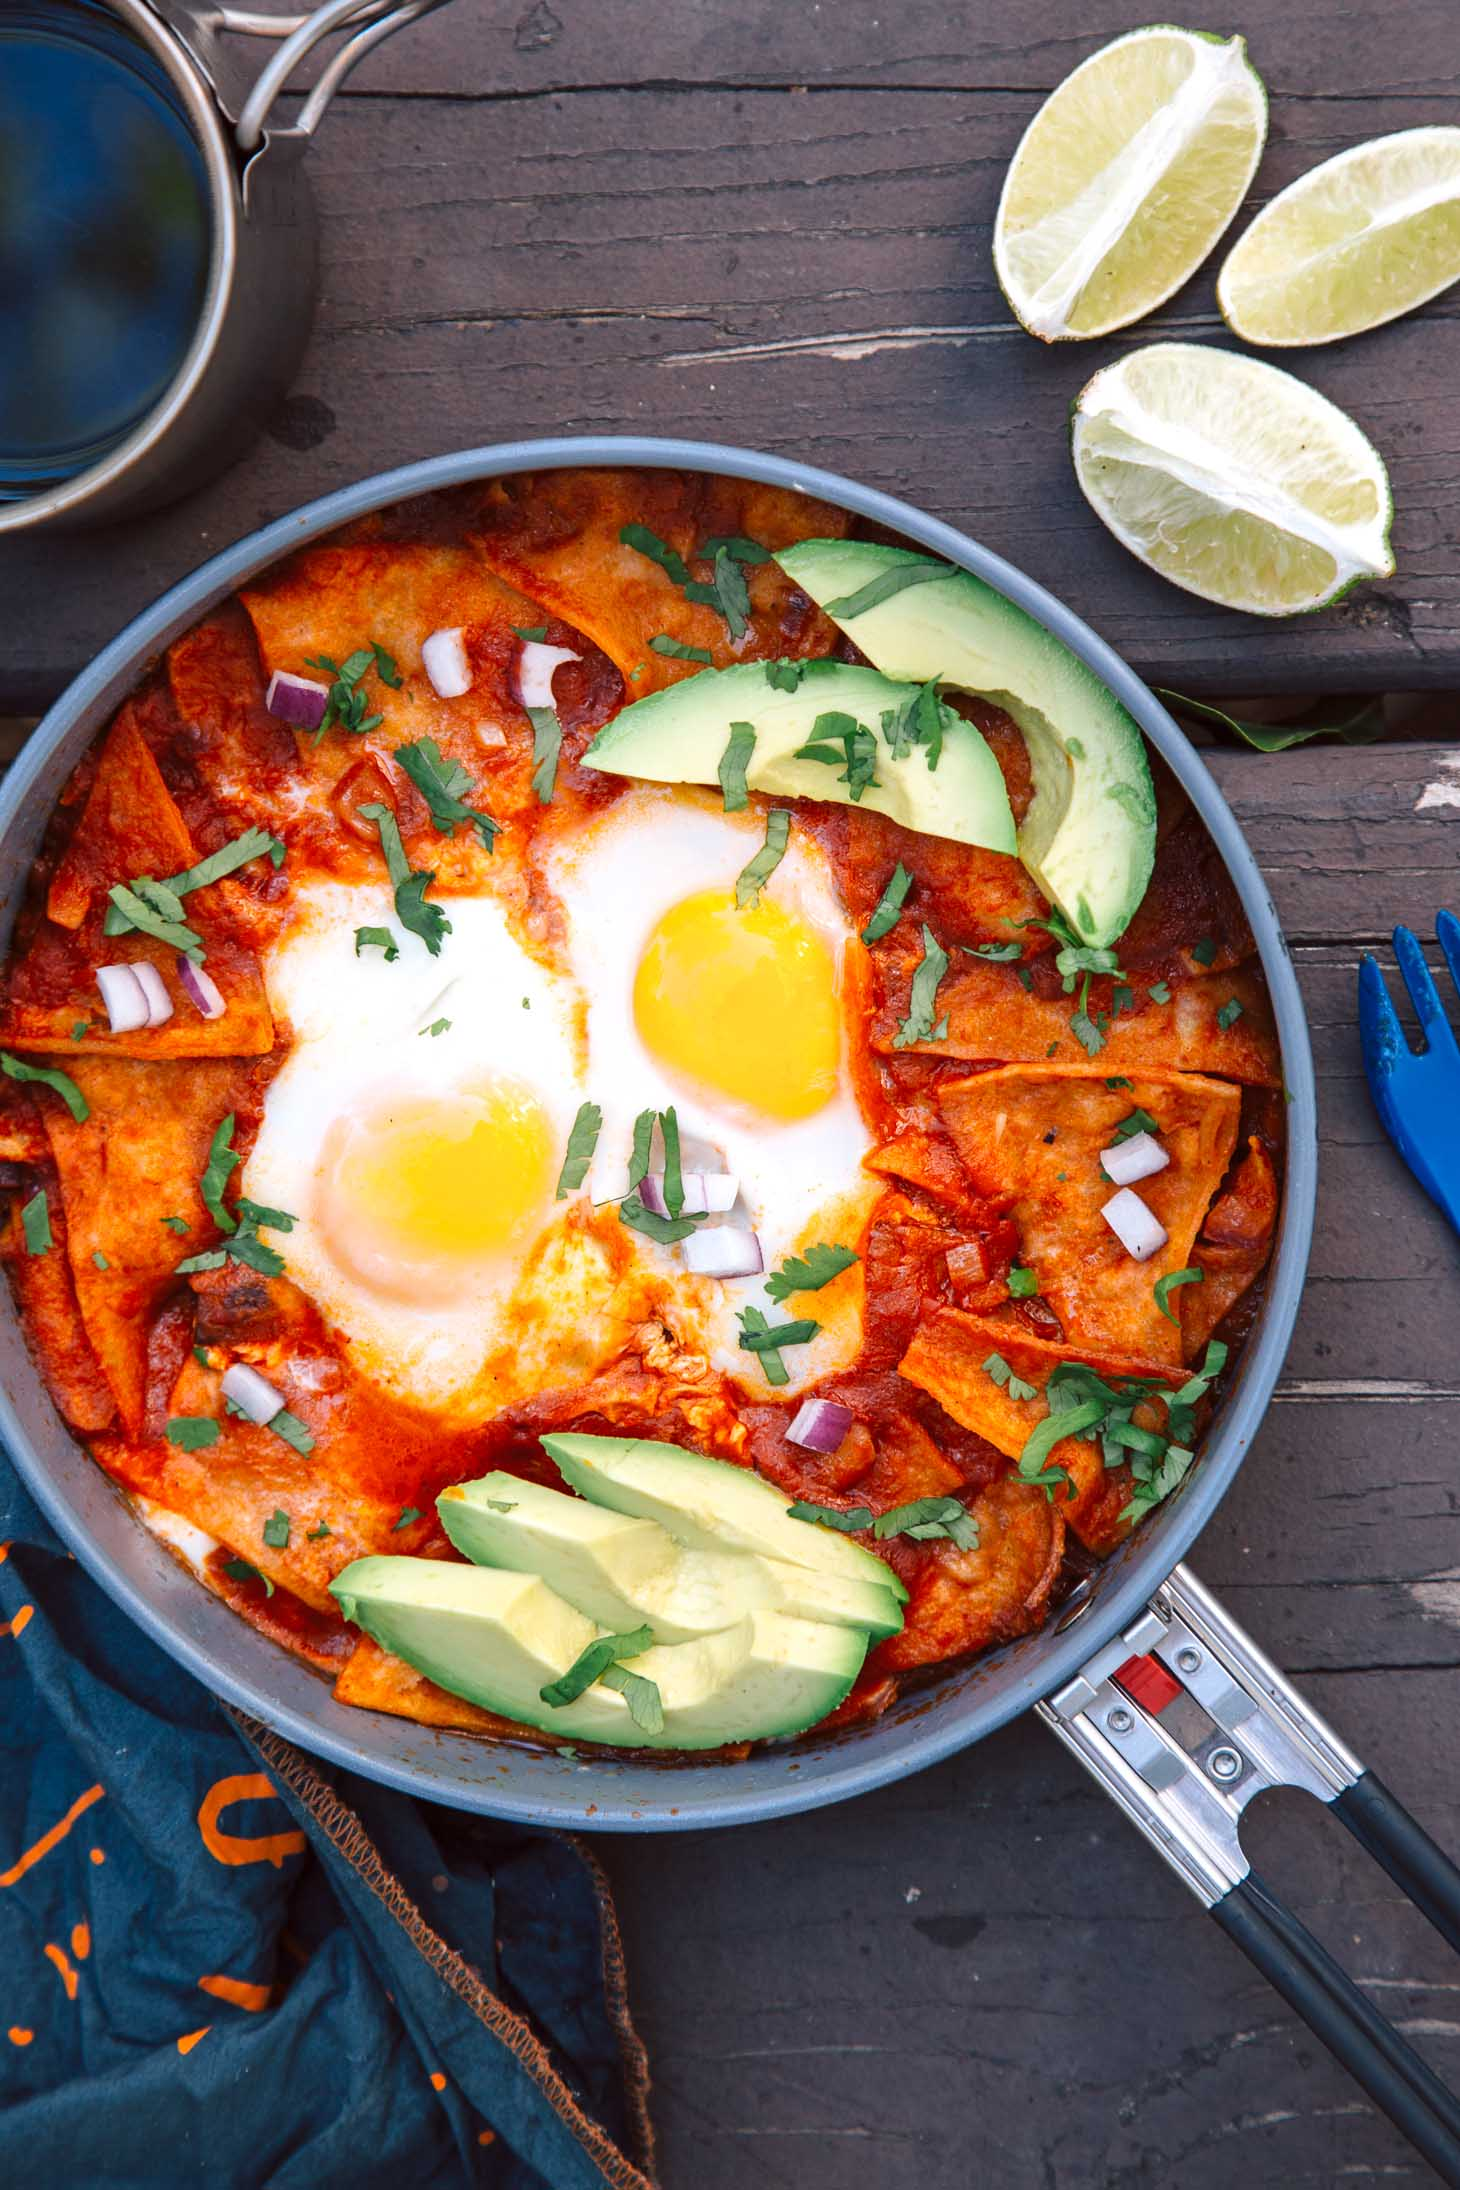 Chilaquiles with eggs and avocados in a pan on a camping table.